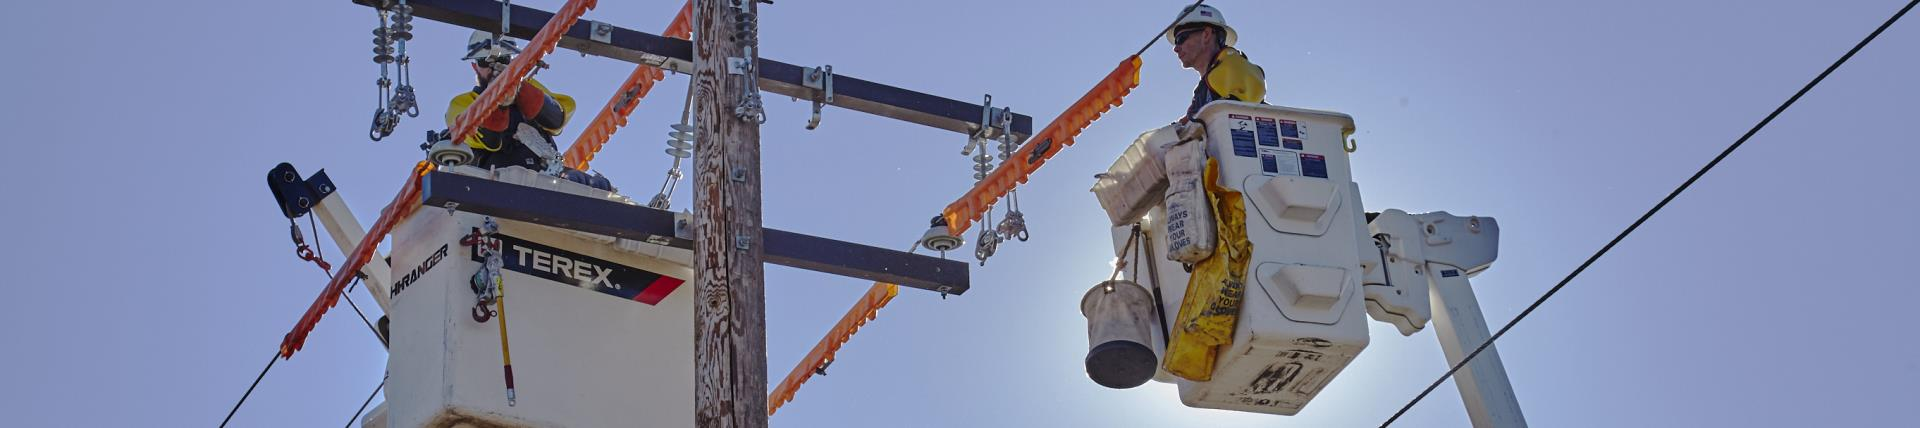 Men in Bucket truck working on power lines